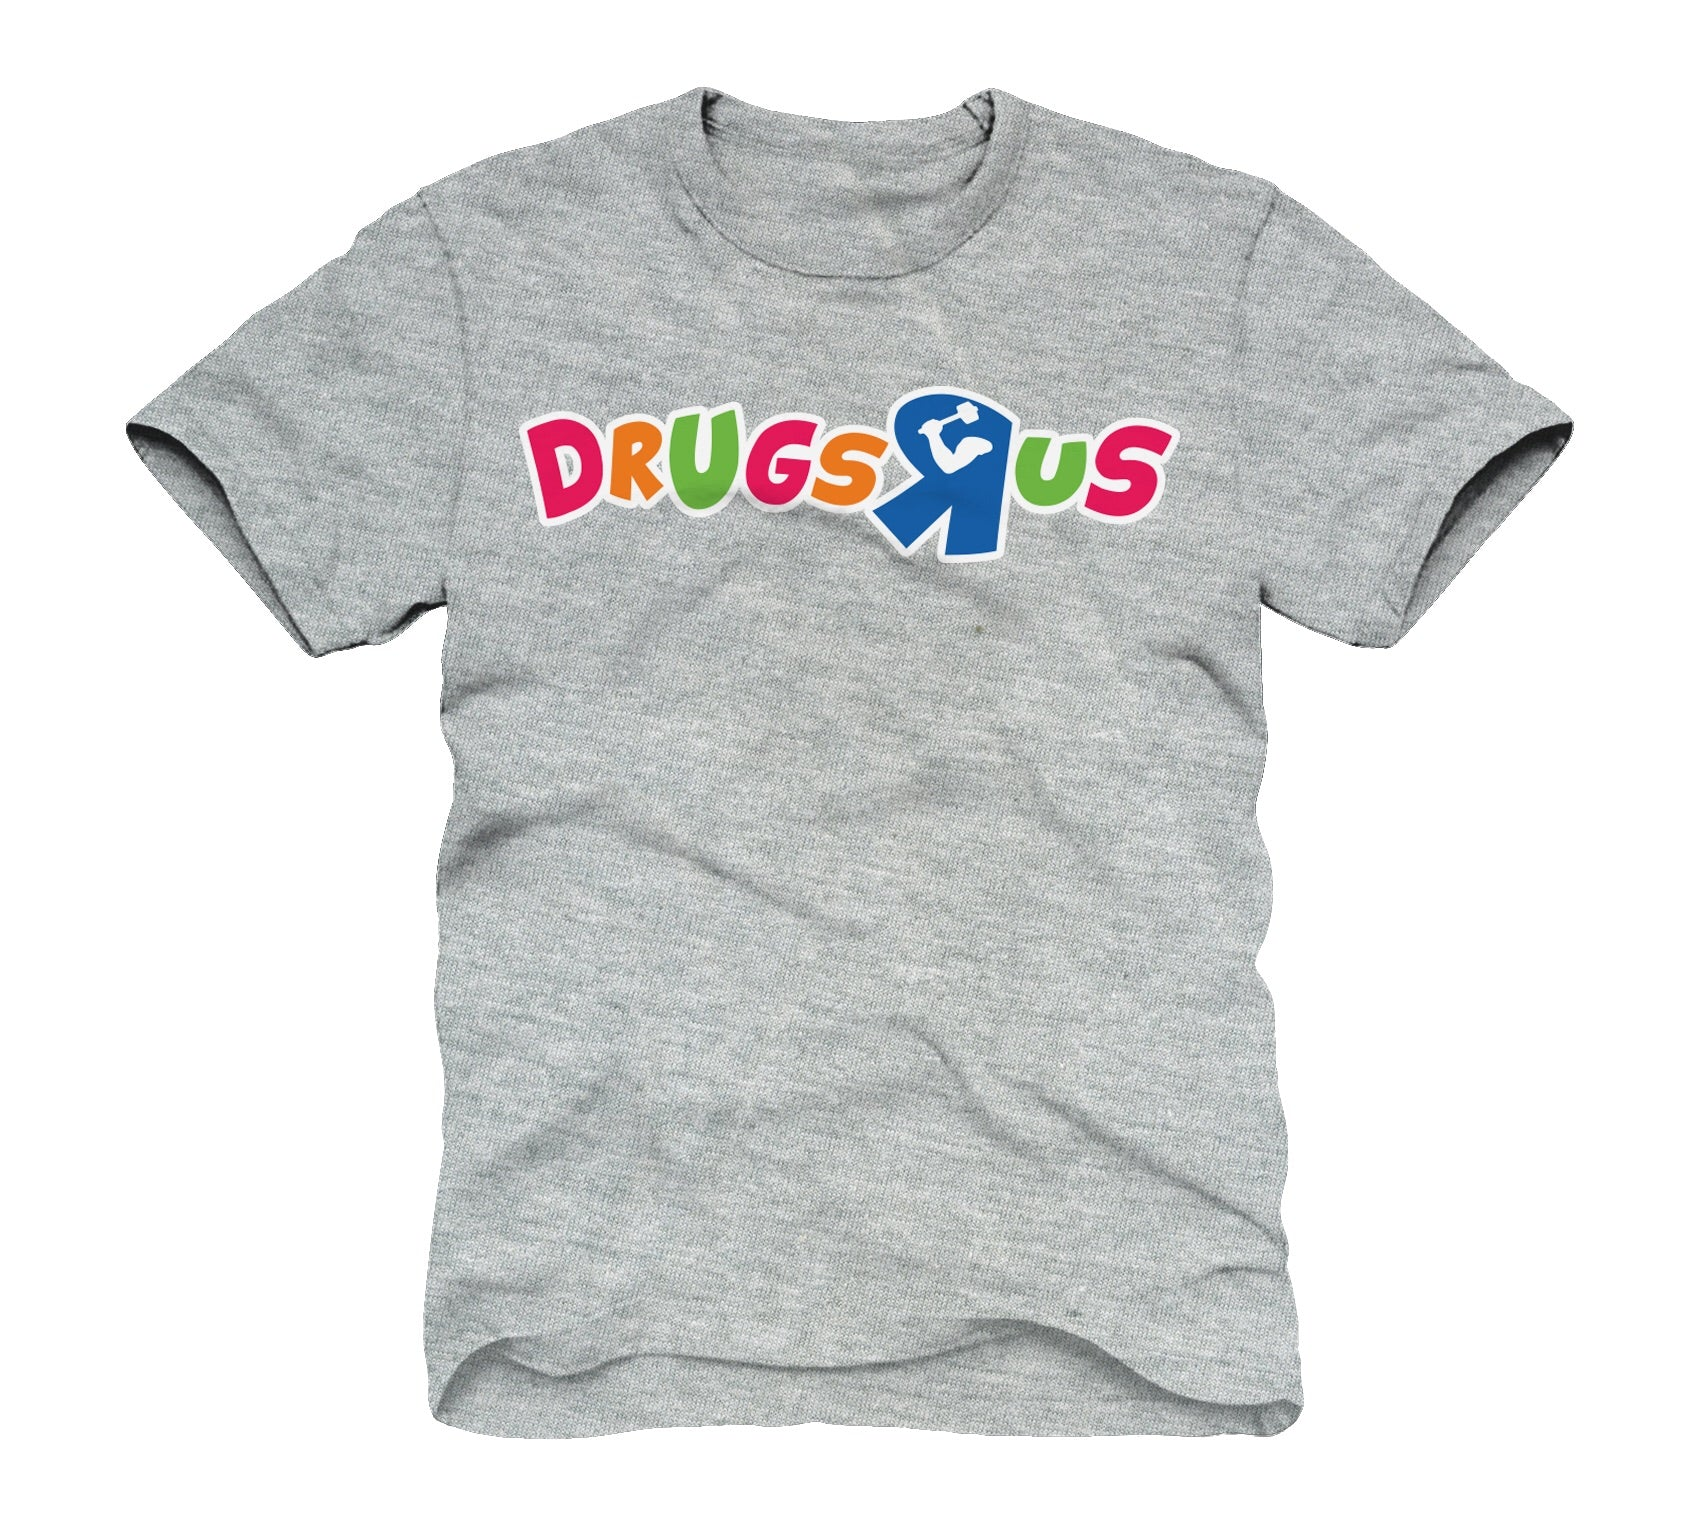 Drugs R Us shirt